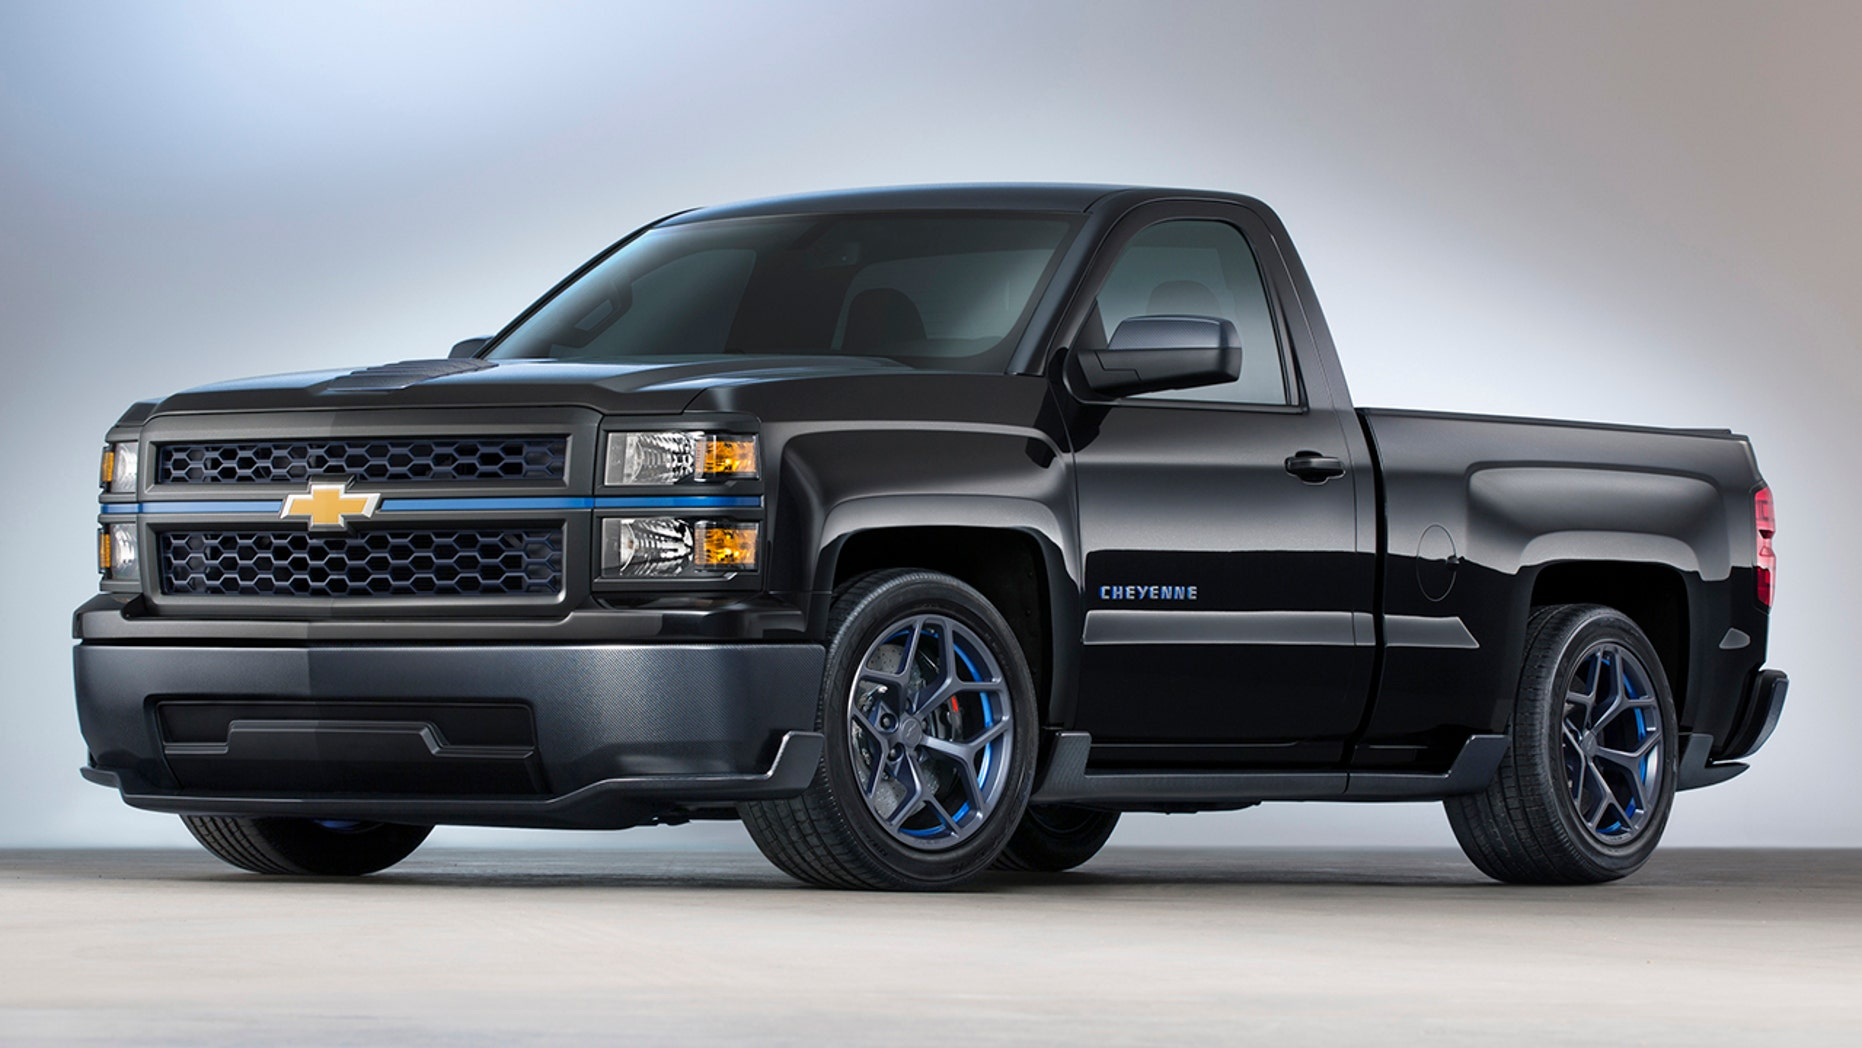 Cheyenne was a concept truck at GM